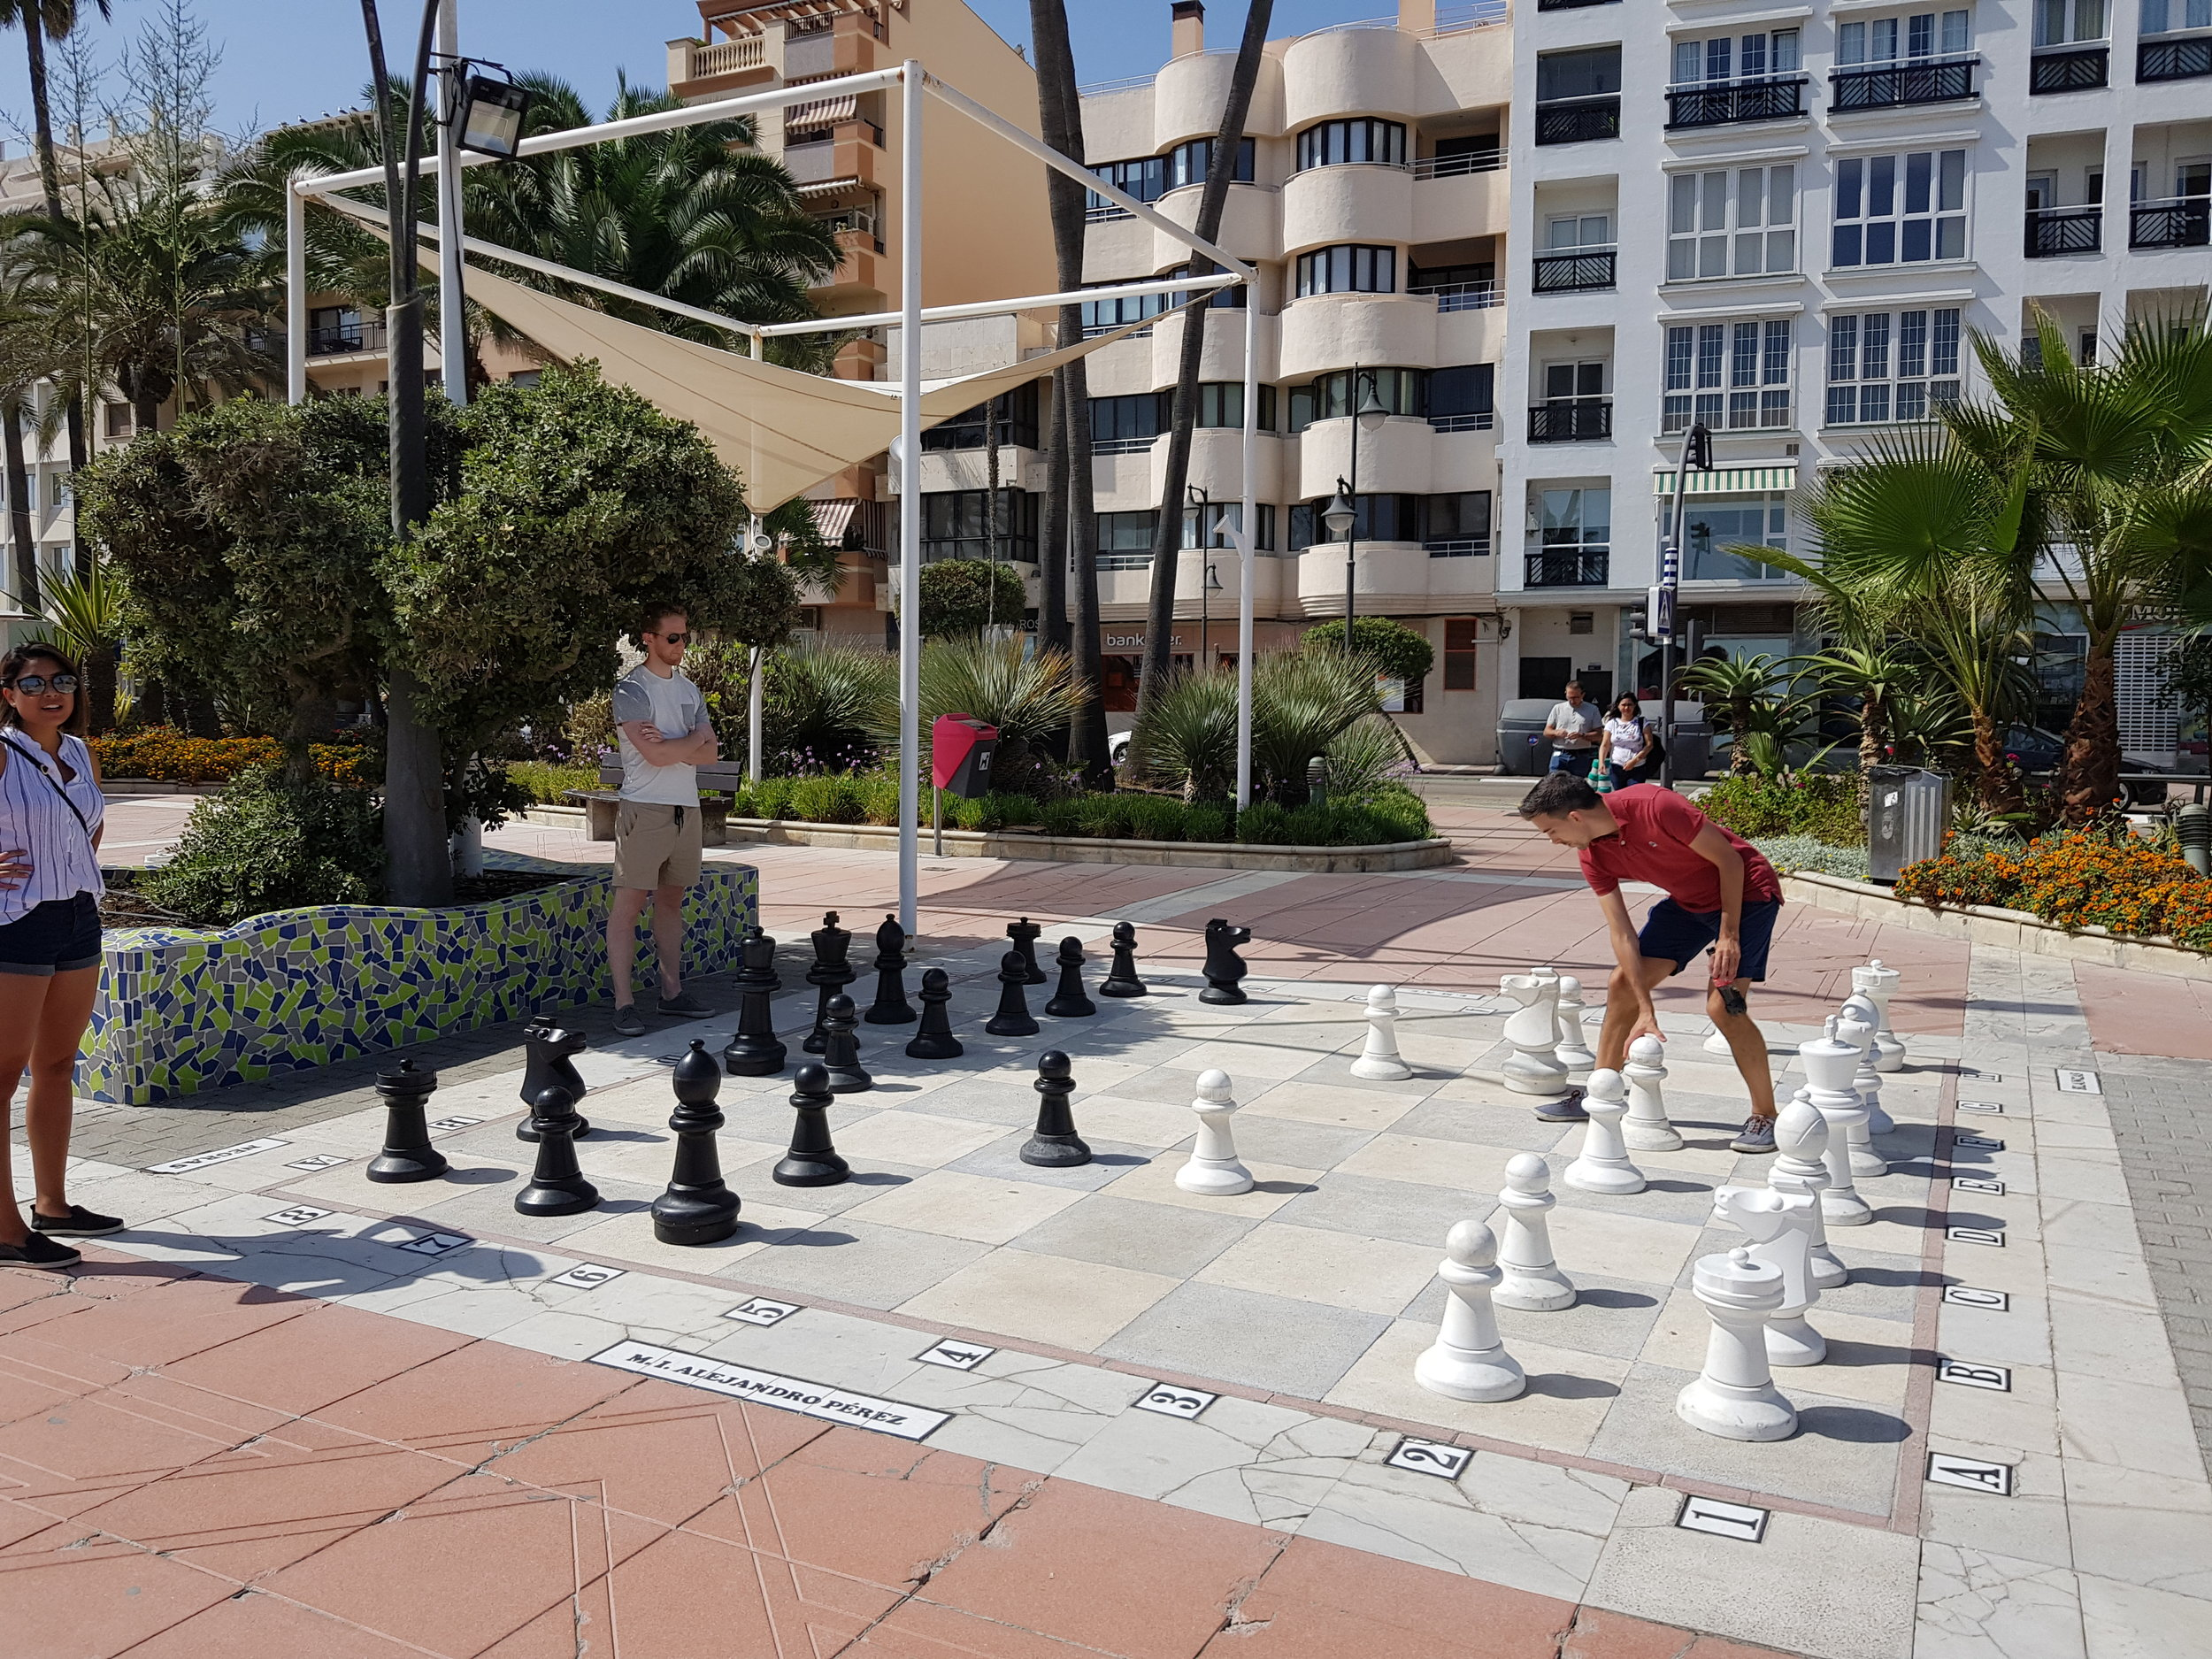 You may even happen upon life-size chess on the  Paseo Marítimo!